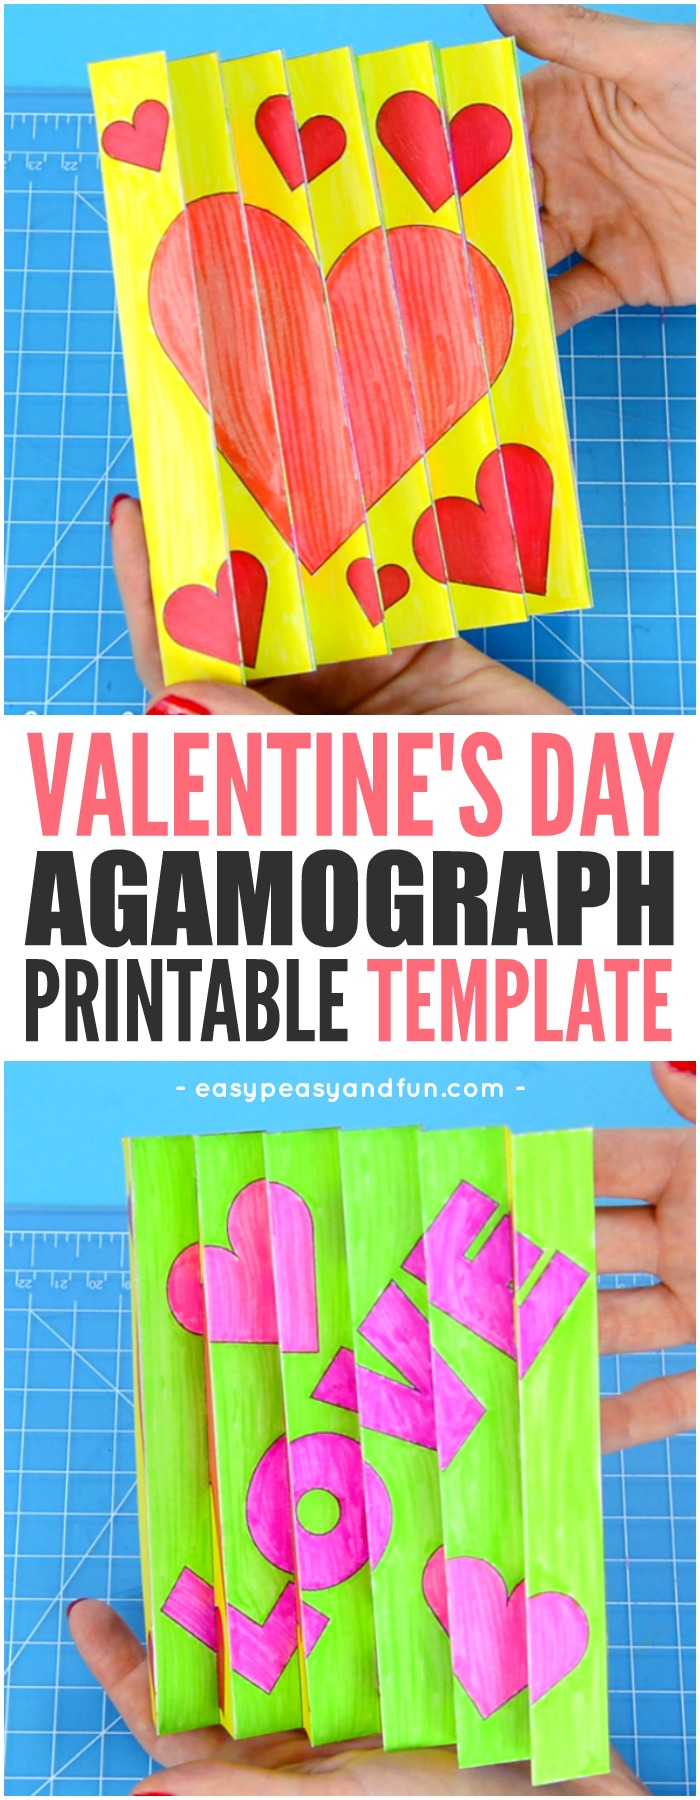 Printable Valentine's Day Agamograph Template Craft for Kids to Make #Valentine'sdaycraftforkids #craftsforkids #craftswithtemplate